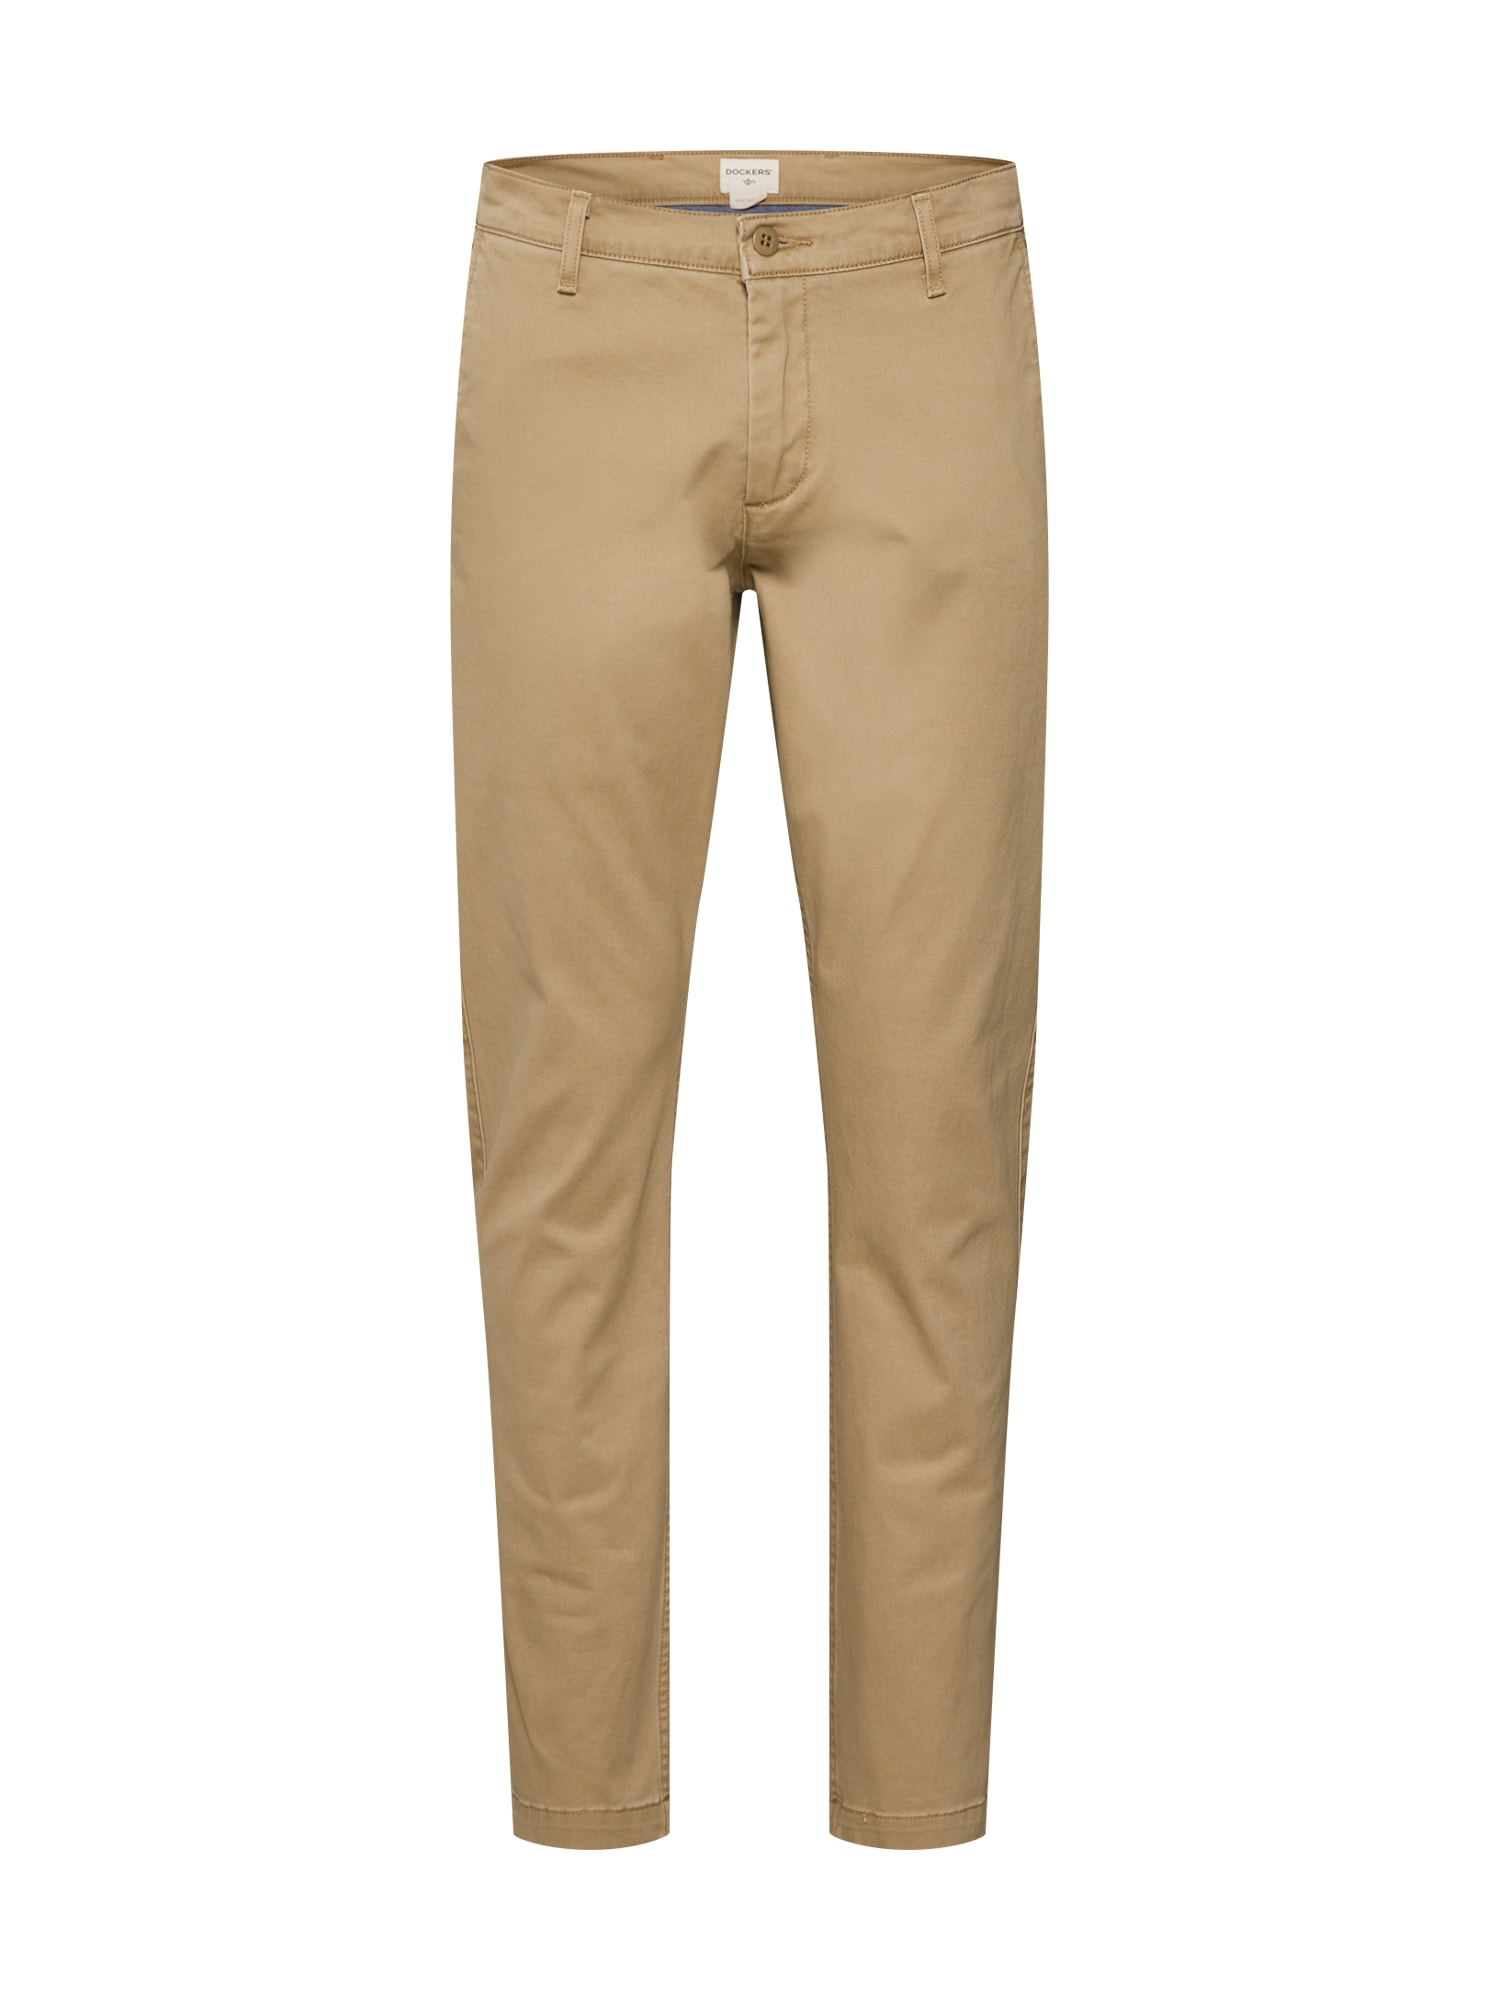 Kalhoty WASHED KHAKI SLIM (TAPERED) - STRETCH TWILL khaki Dockers